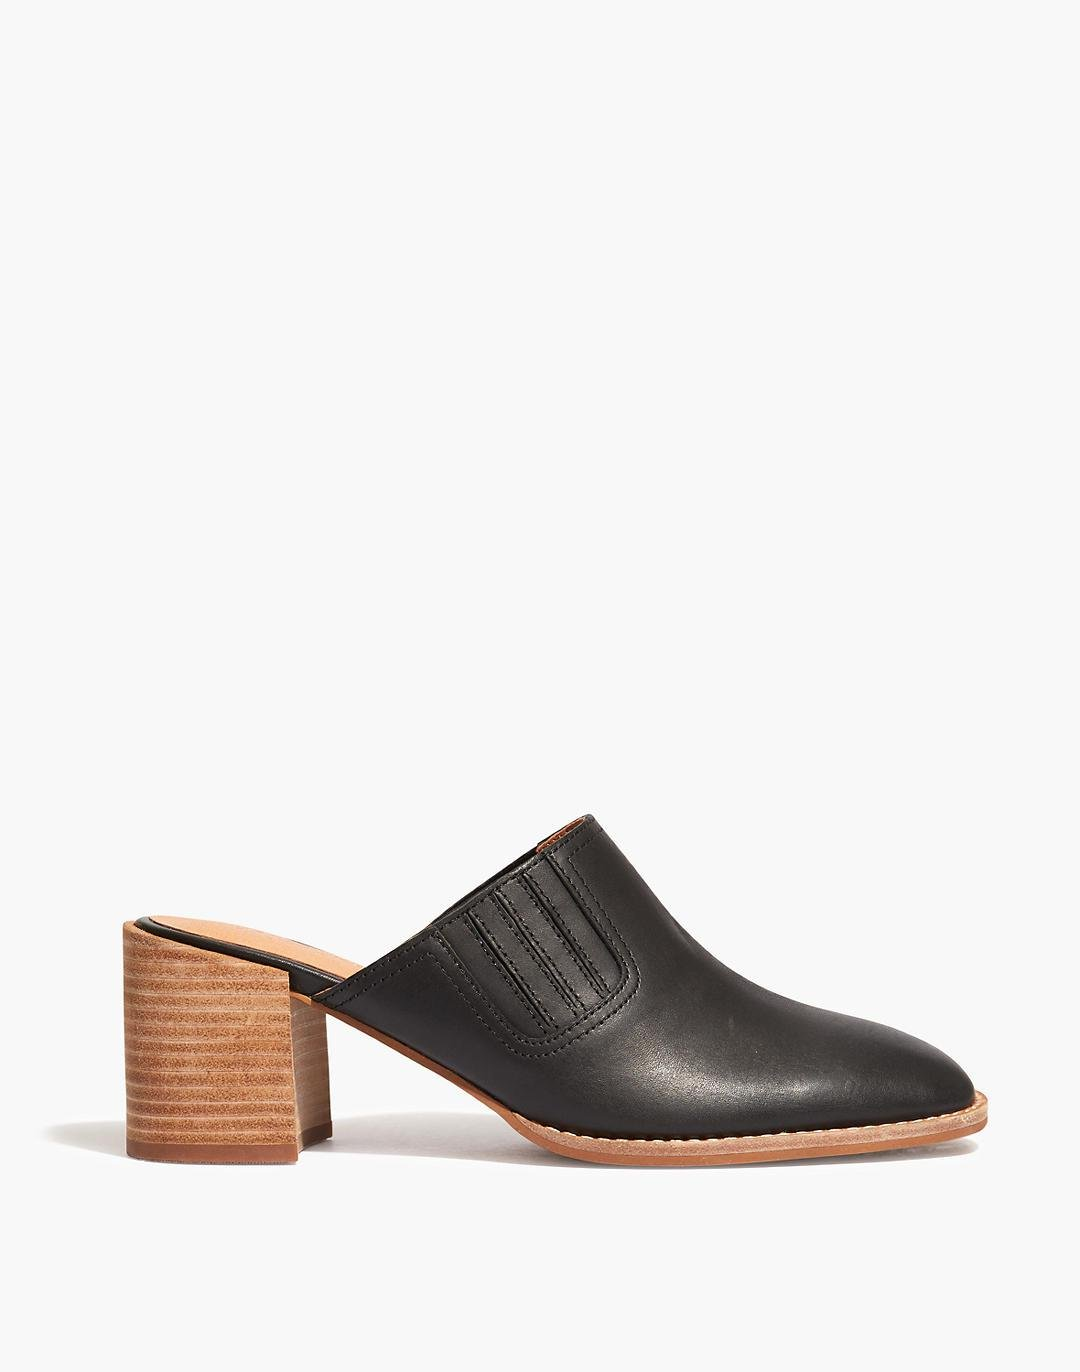 The Carey Mule in Leather 1